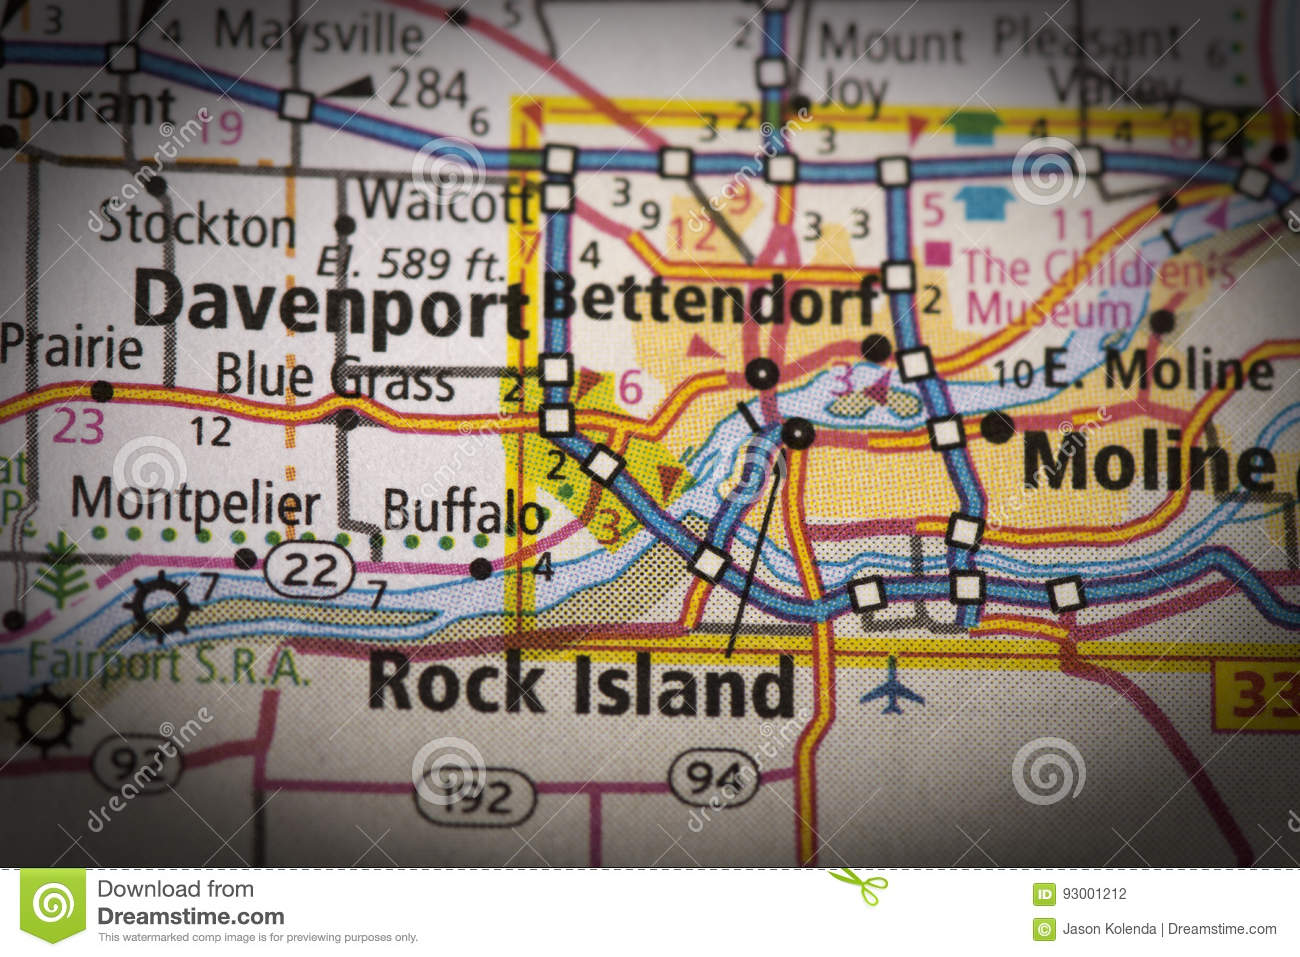 Quad Cities on map stock photo. Image of tourism, quad ... on davenport map, augustana college, east moline, park view, north central arizona map, quad city illinois, davenport skybridge, tri cities map, quad states map, classic cities map, mli airport map, midwest region states and capitals map, amana village historic map, quad city area, moline il map, le claire, mercer county, i-74 bridge, rock island county, macomb area map, i-74 bridge map, bettendorf map, quad city international airport, london cities map, rock island, quad city mallards hockey, illinois map, iowa map, quad city ia, rock island arsenal, sports cities map, quad cities metropolitan area,